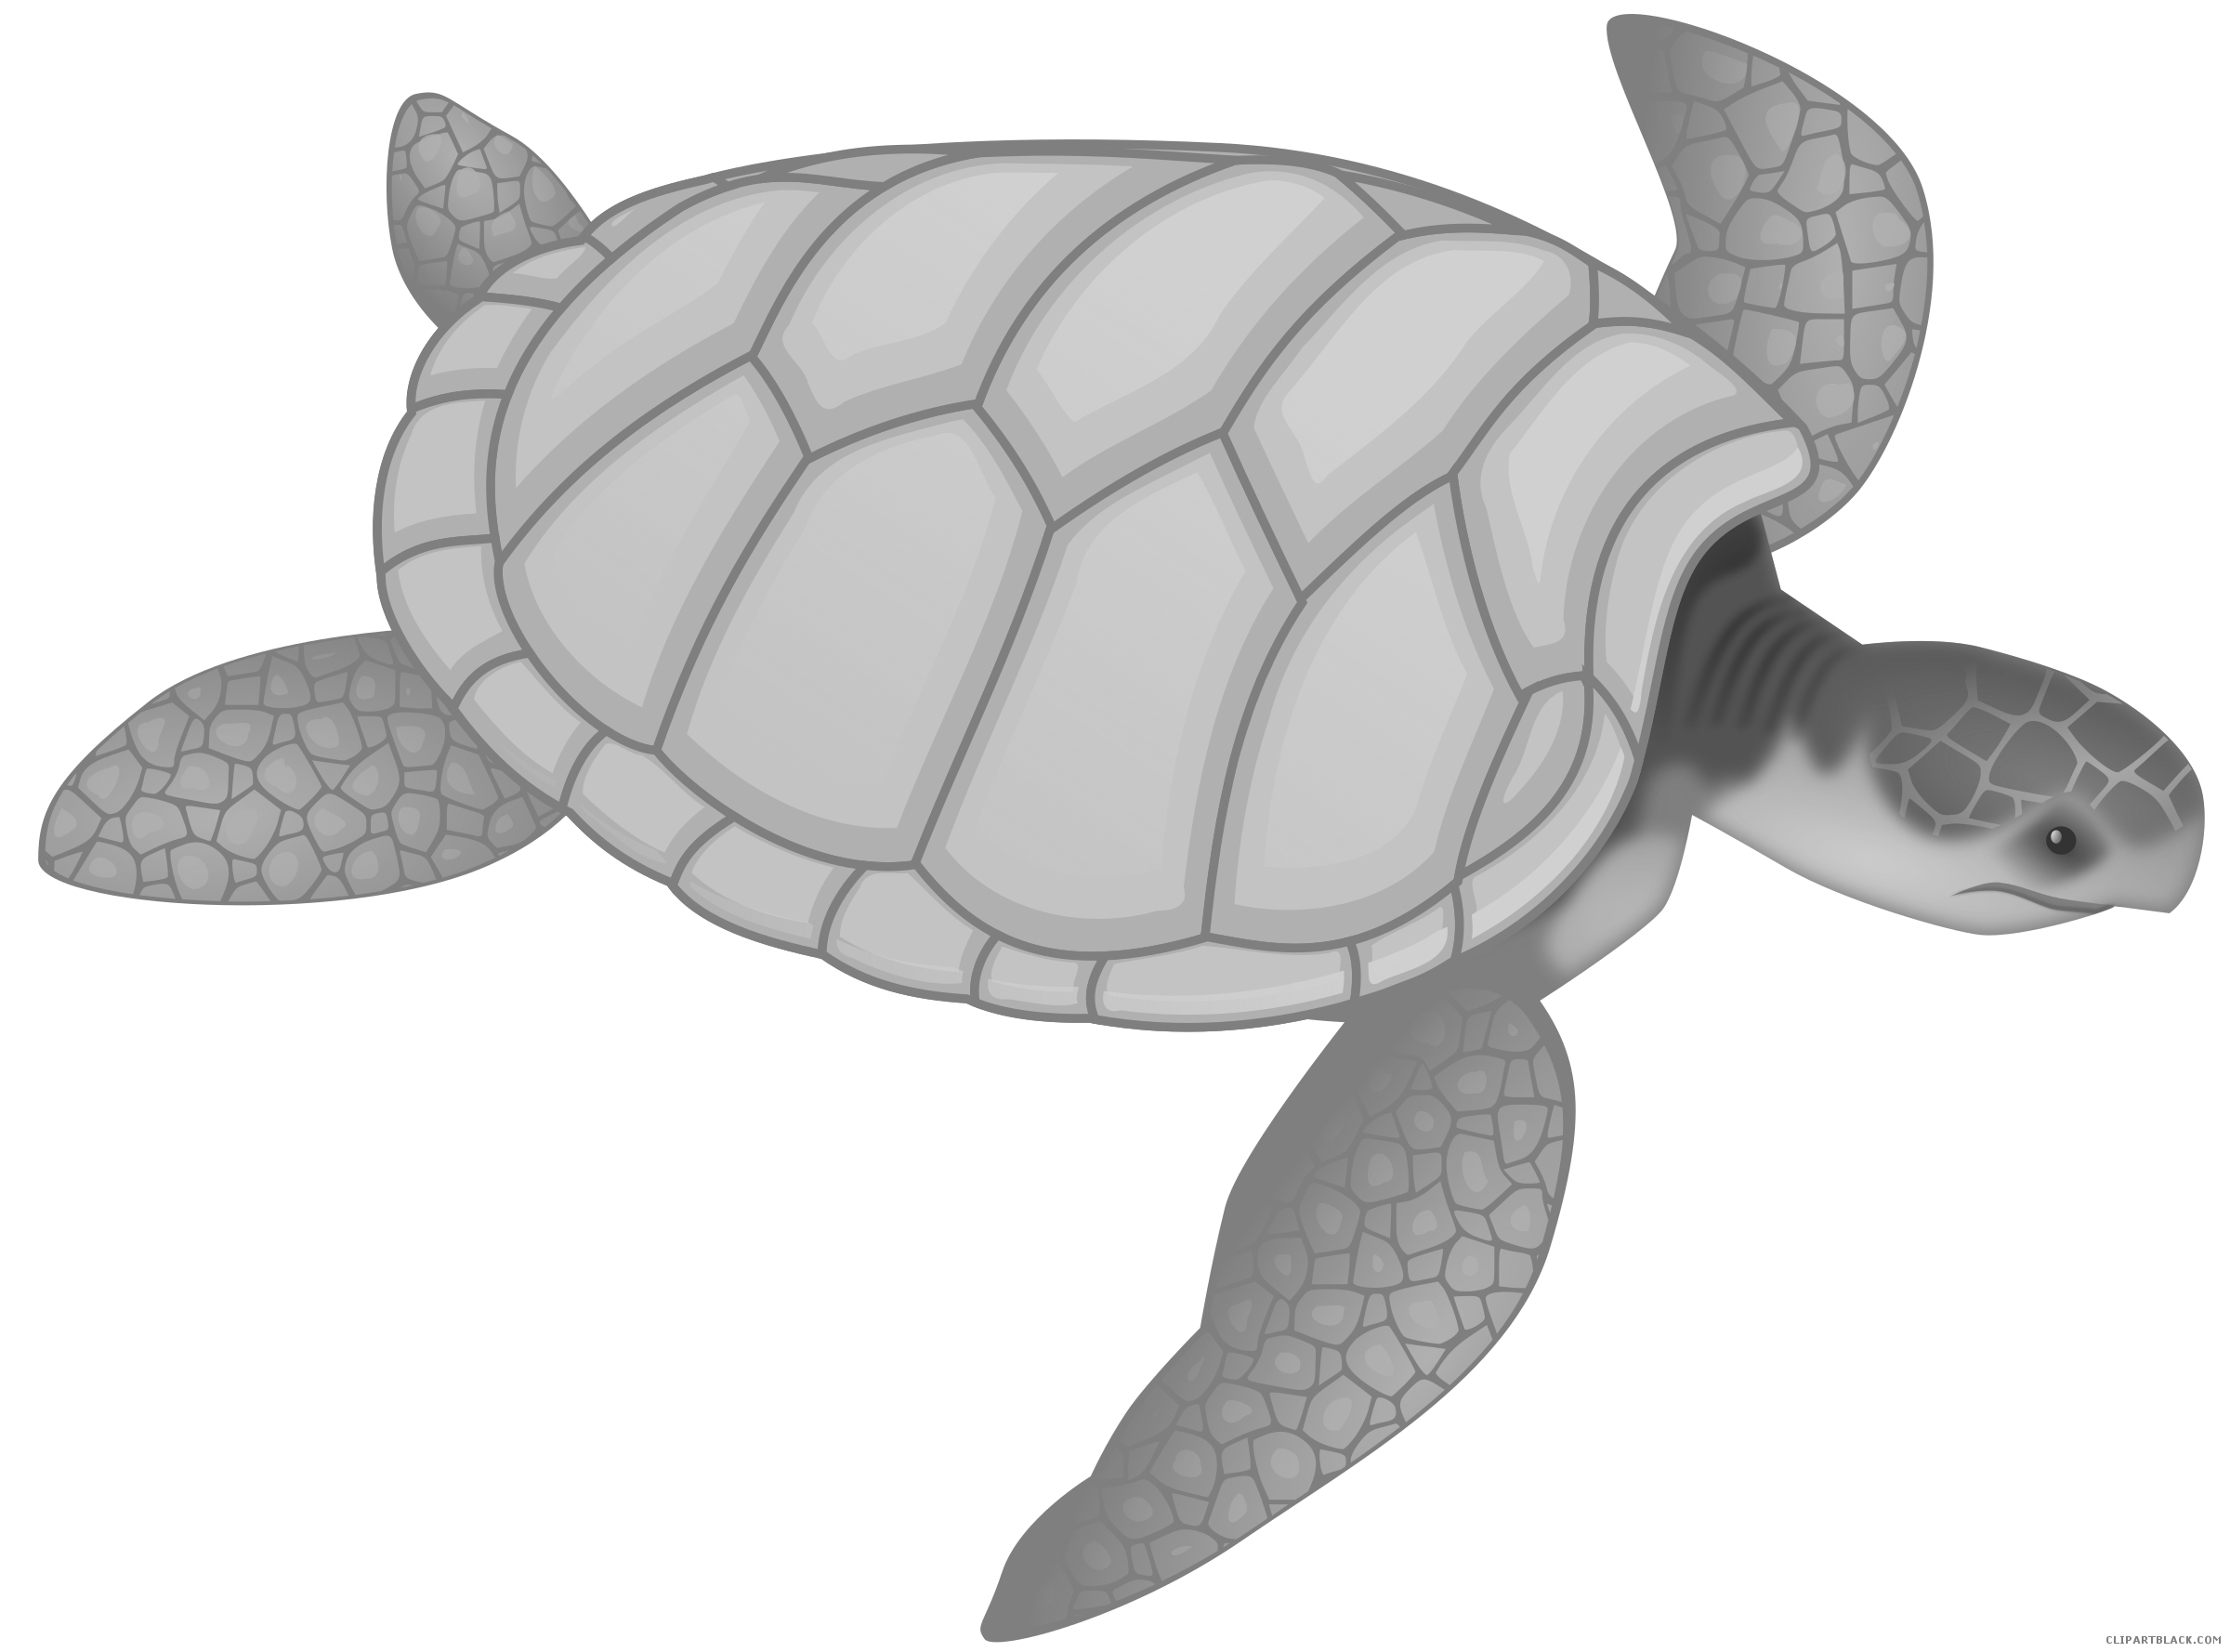 Sea clipartblack com animal. White clipart turtle